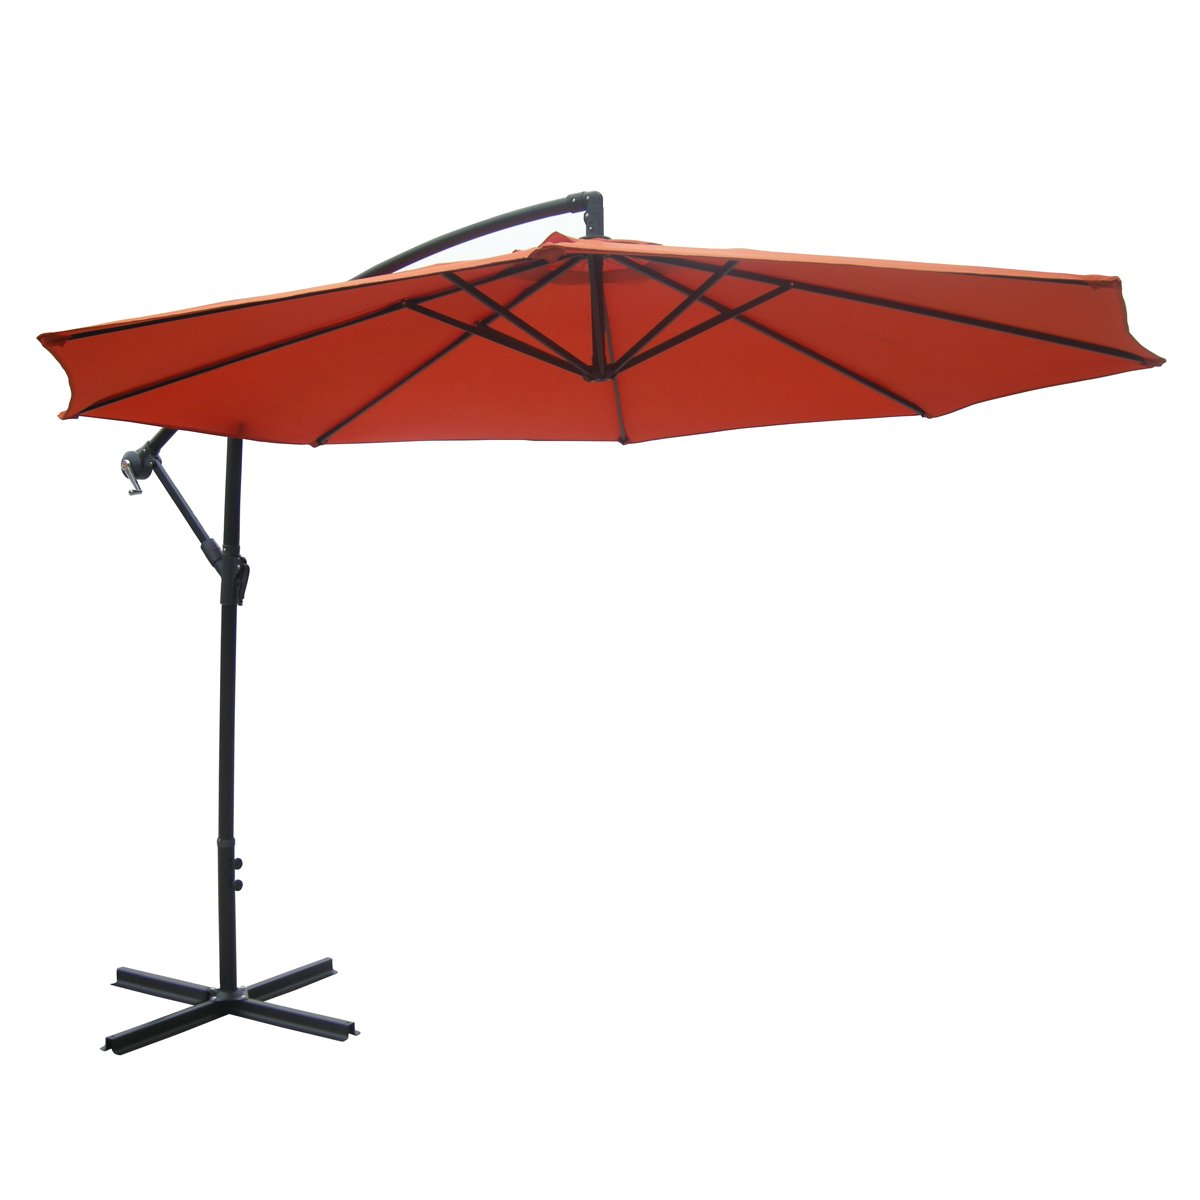 Amazon.com : Zest Avenue 10 Ft Orange Aluminum Patio Offset Umbrella :  Garden U0026 Outdoor